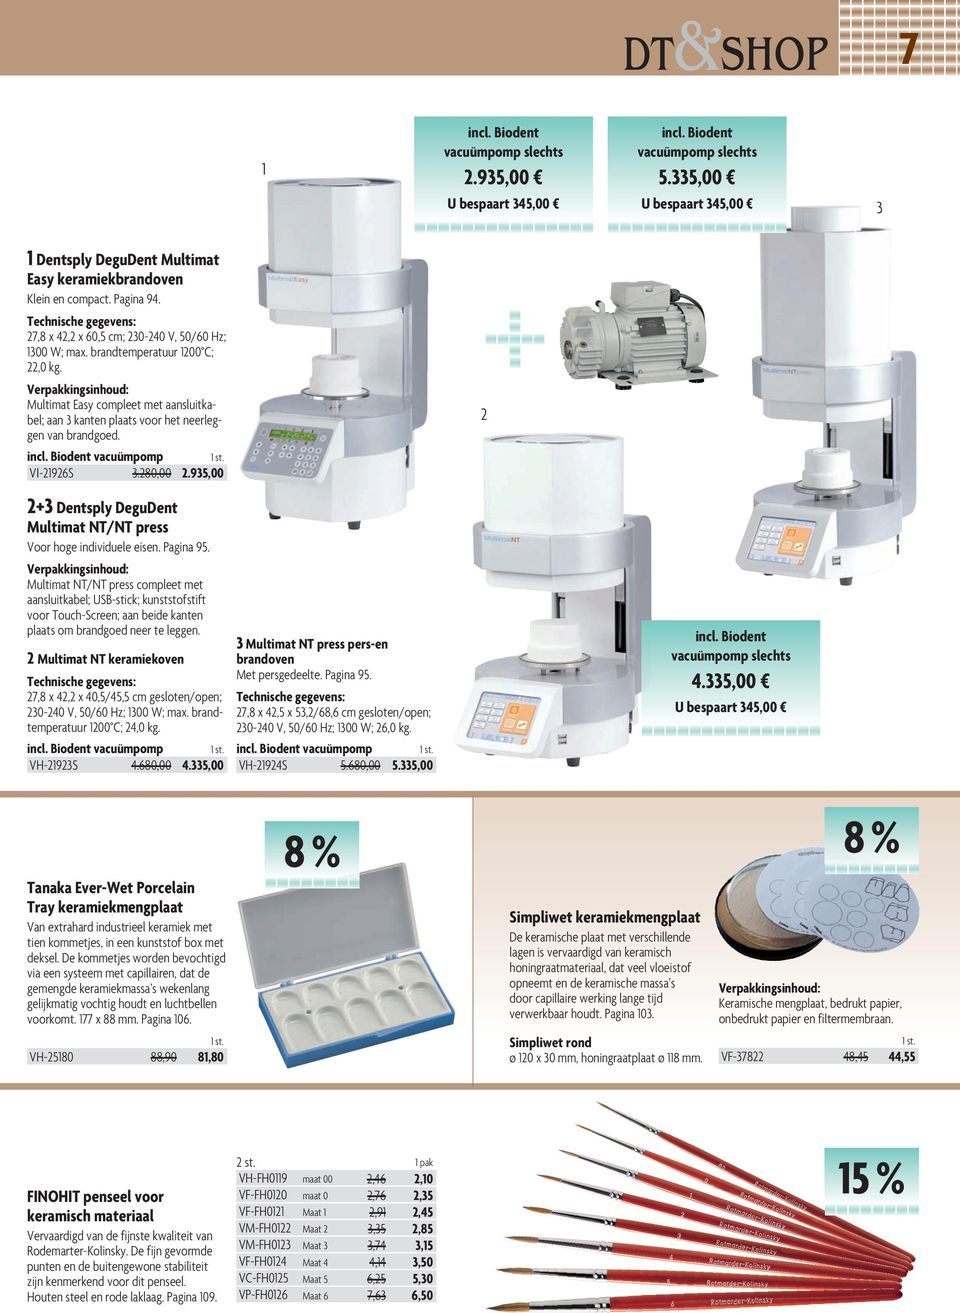 incl. Biodent vacuümpomp VI-21926S 3.280,00 2.935,00 2 2+3 Dentsply DeguDent Multimat NT/NT press Voor hoge individuele eisen. Pagina 95.